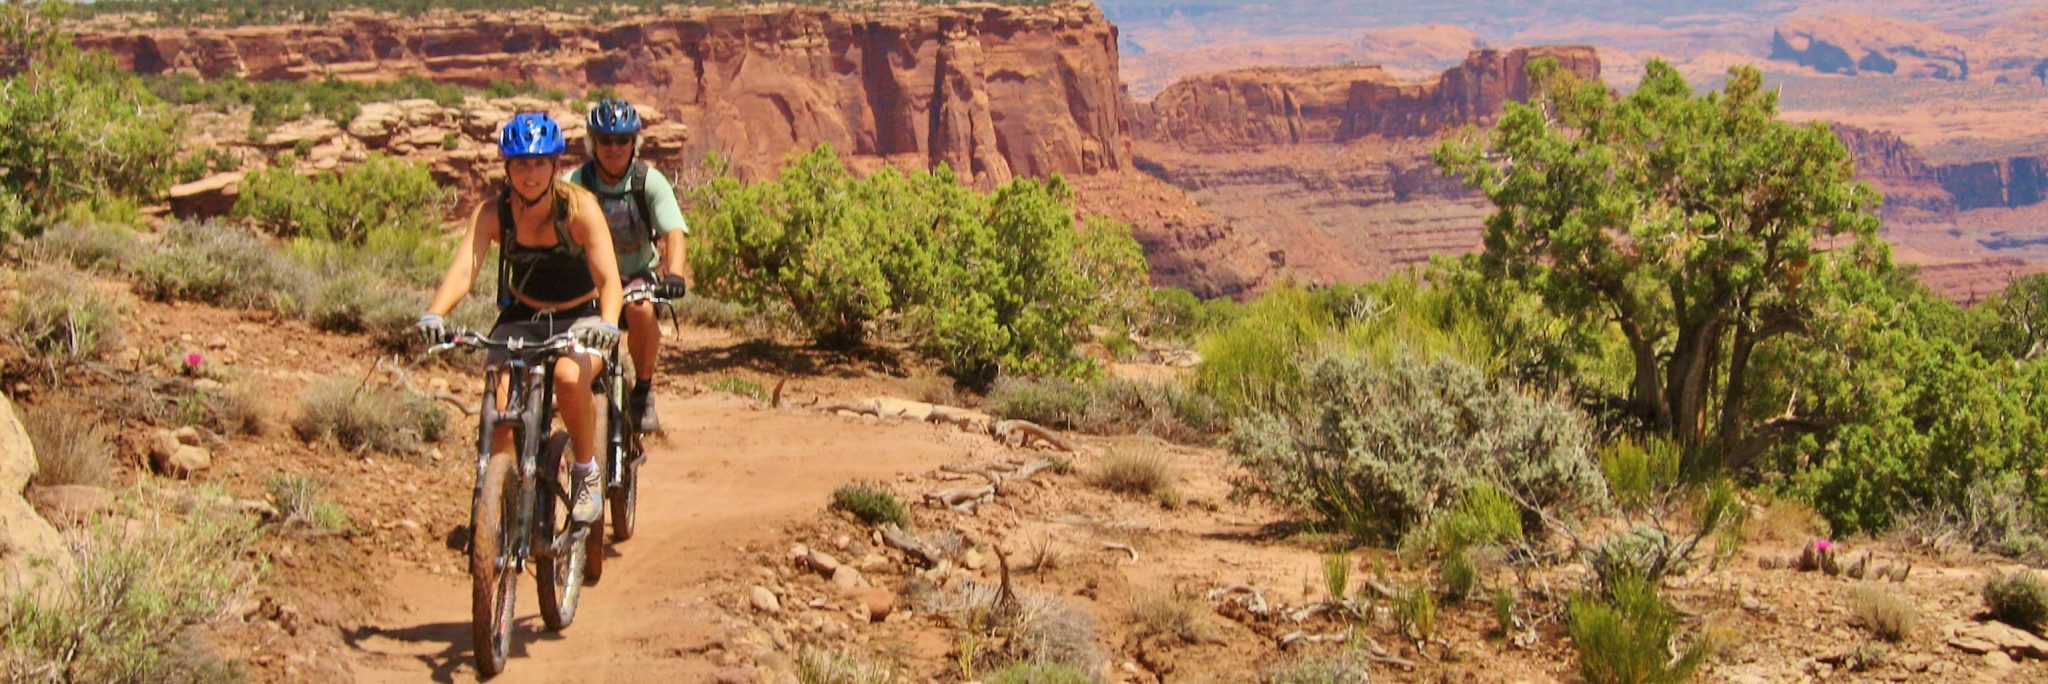 Riders follow a guide on the cliffside section of the Dead Horse Point Singletrack, also known as The Intrepid Trail outside Moab UT